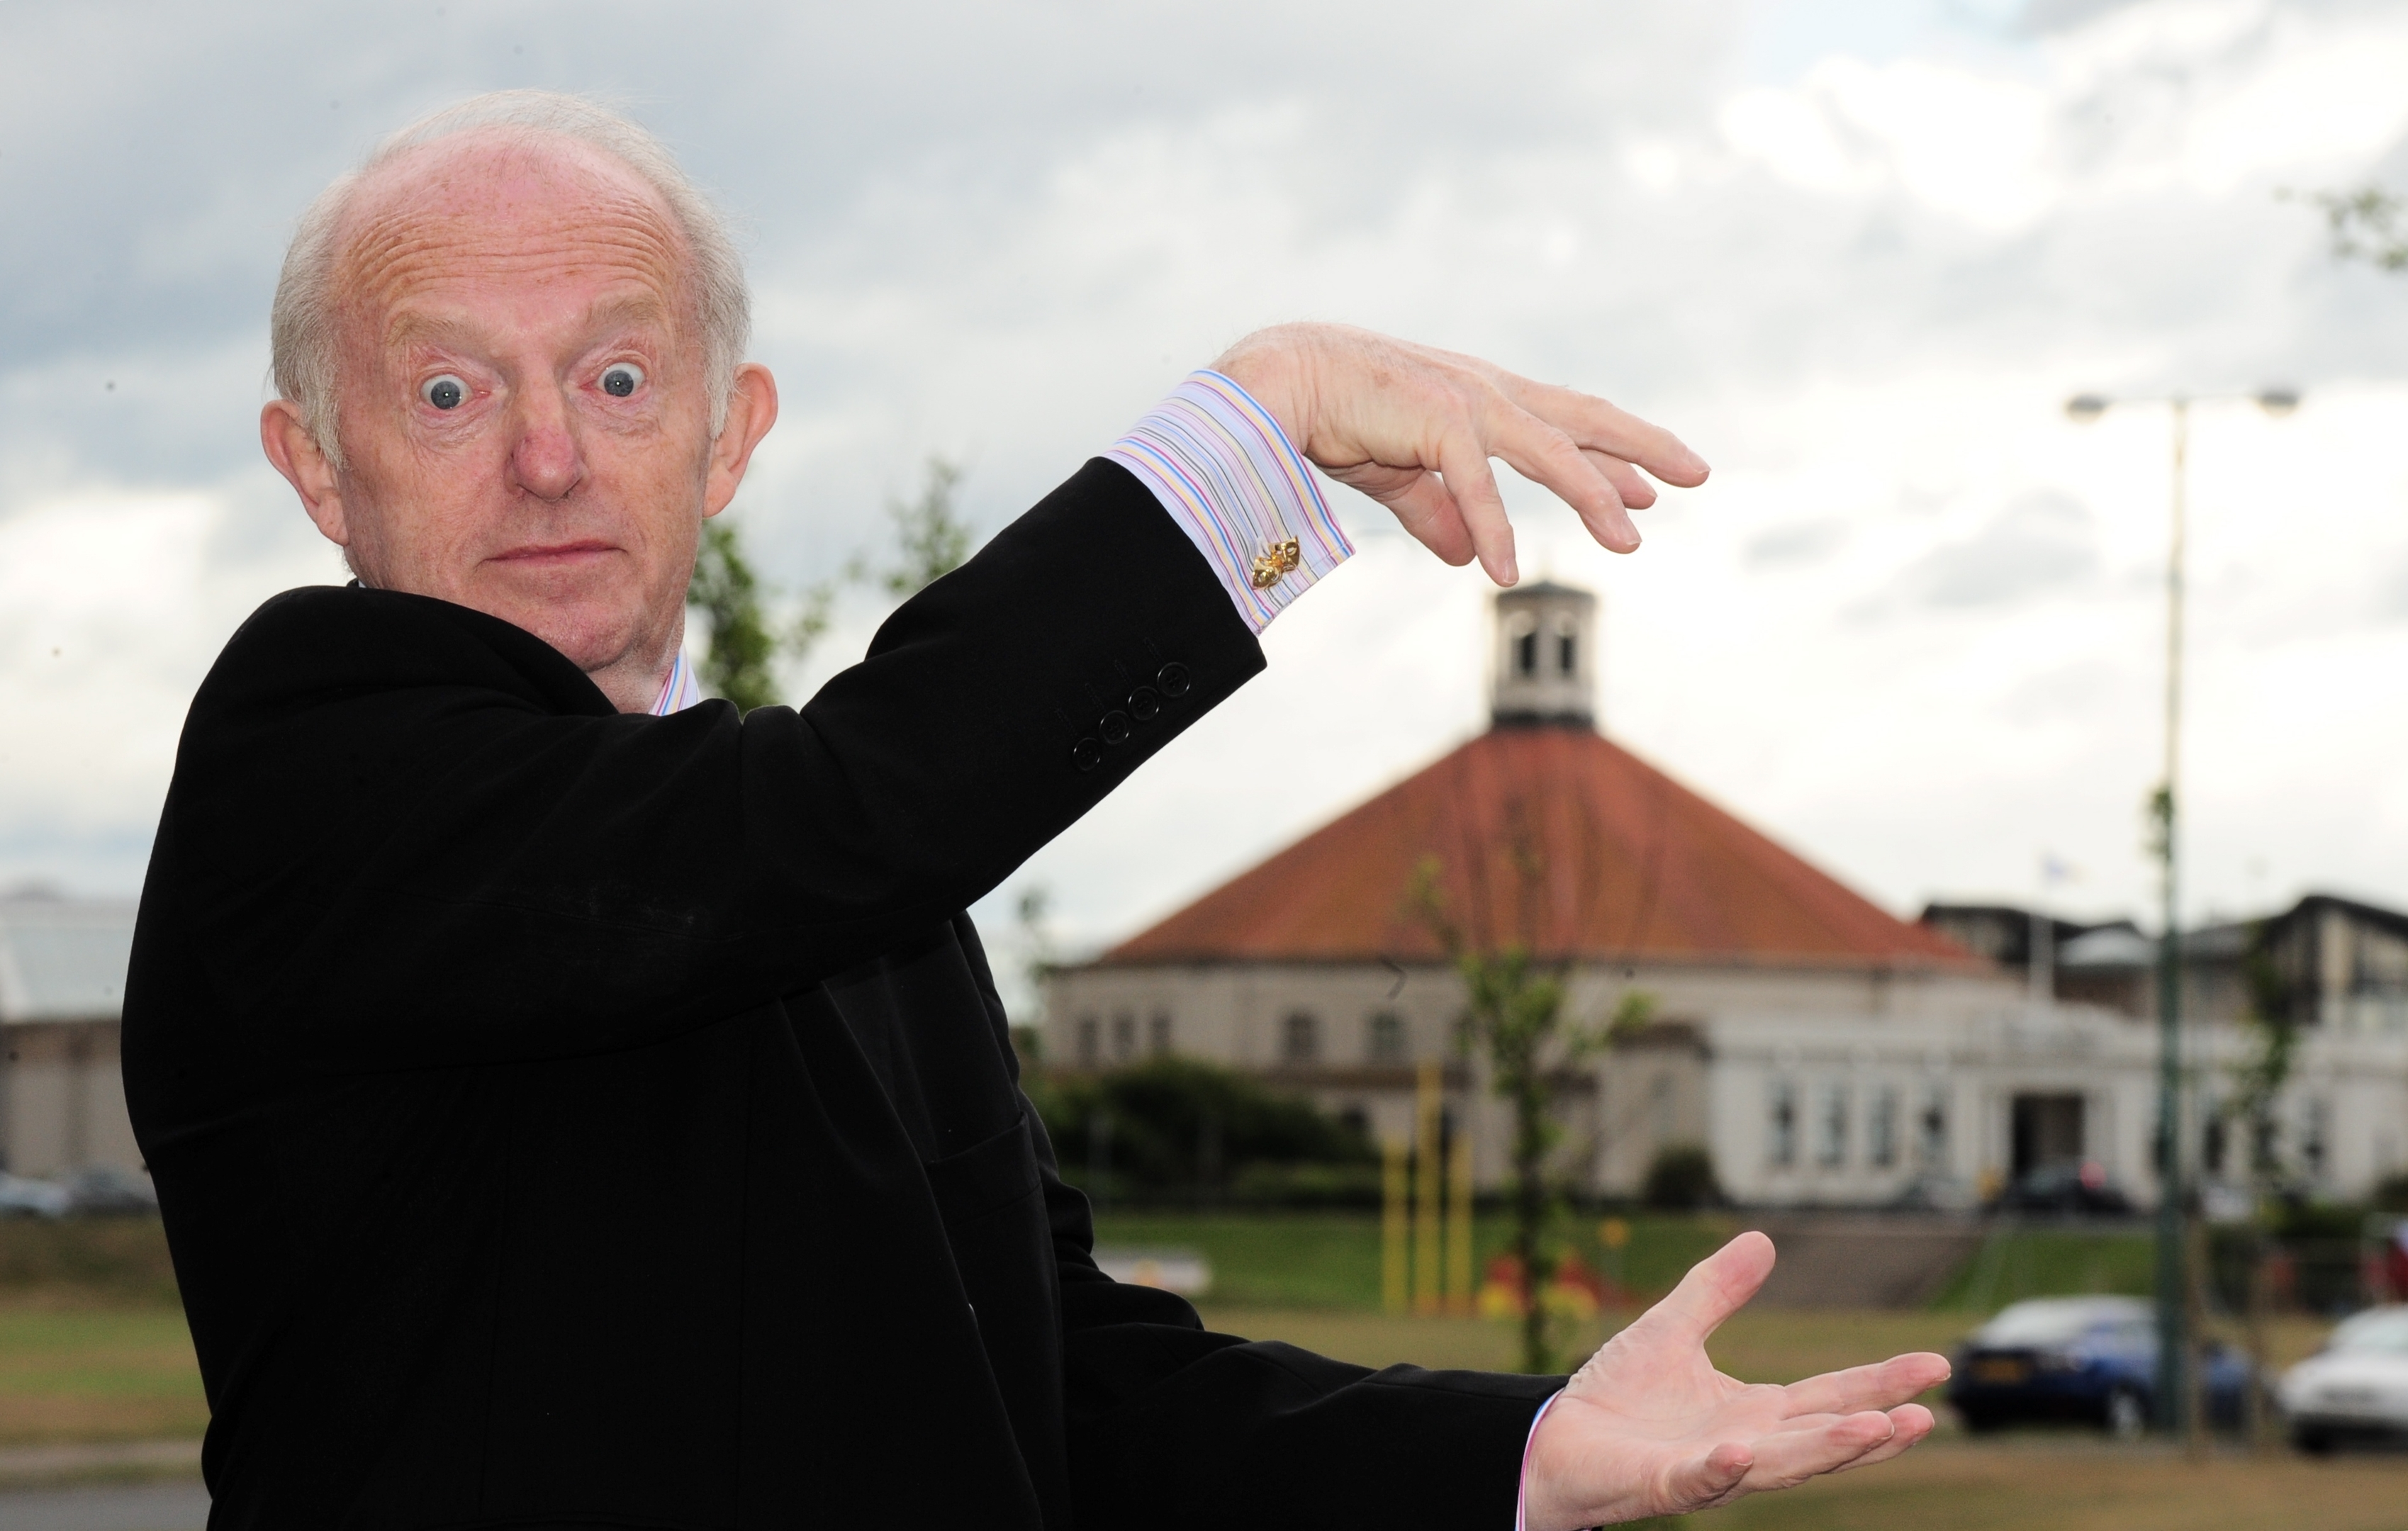 Magician Paul Daniels was in the city on thursday to open the Cinders Aberdeen showroom at 55 Cotton Street.